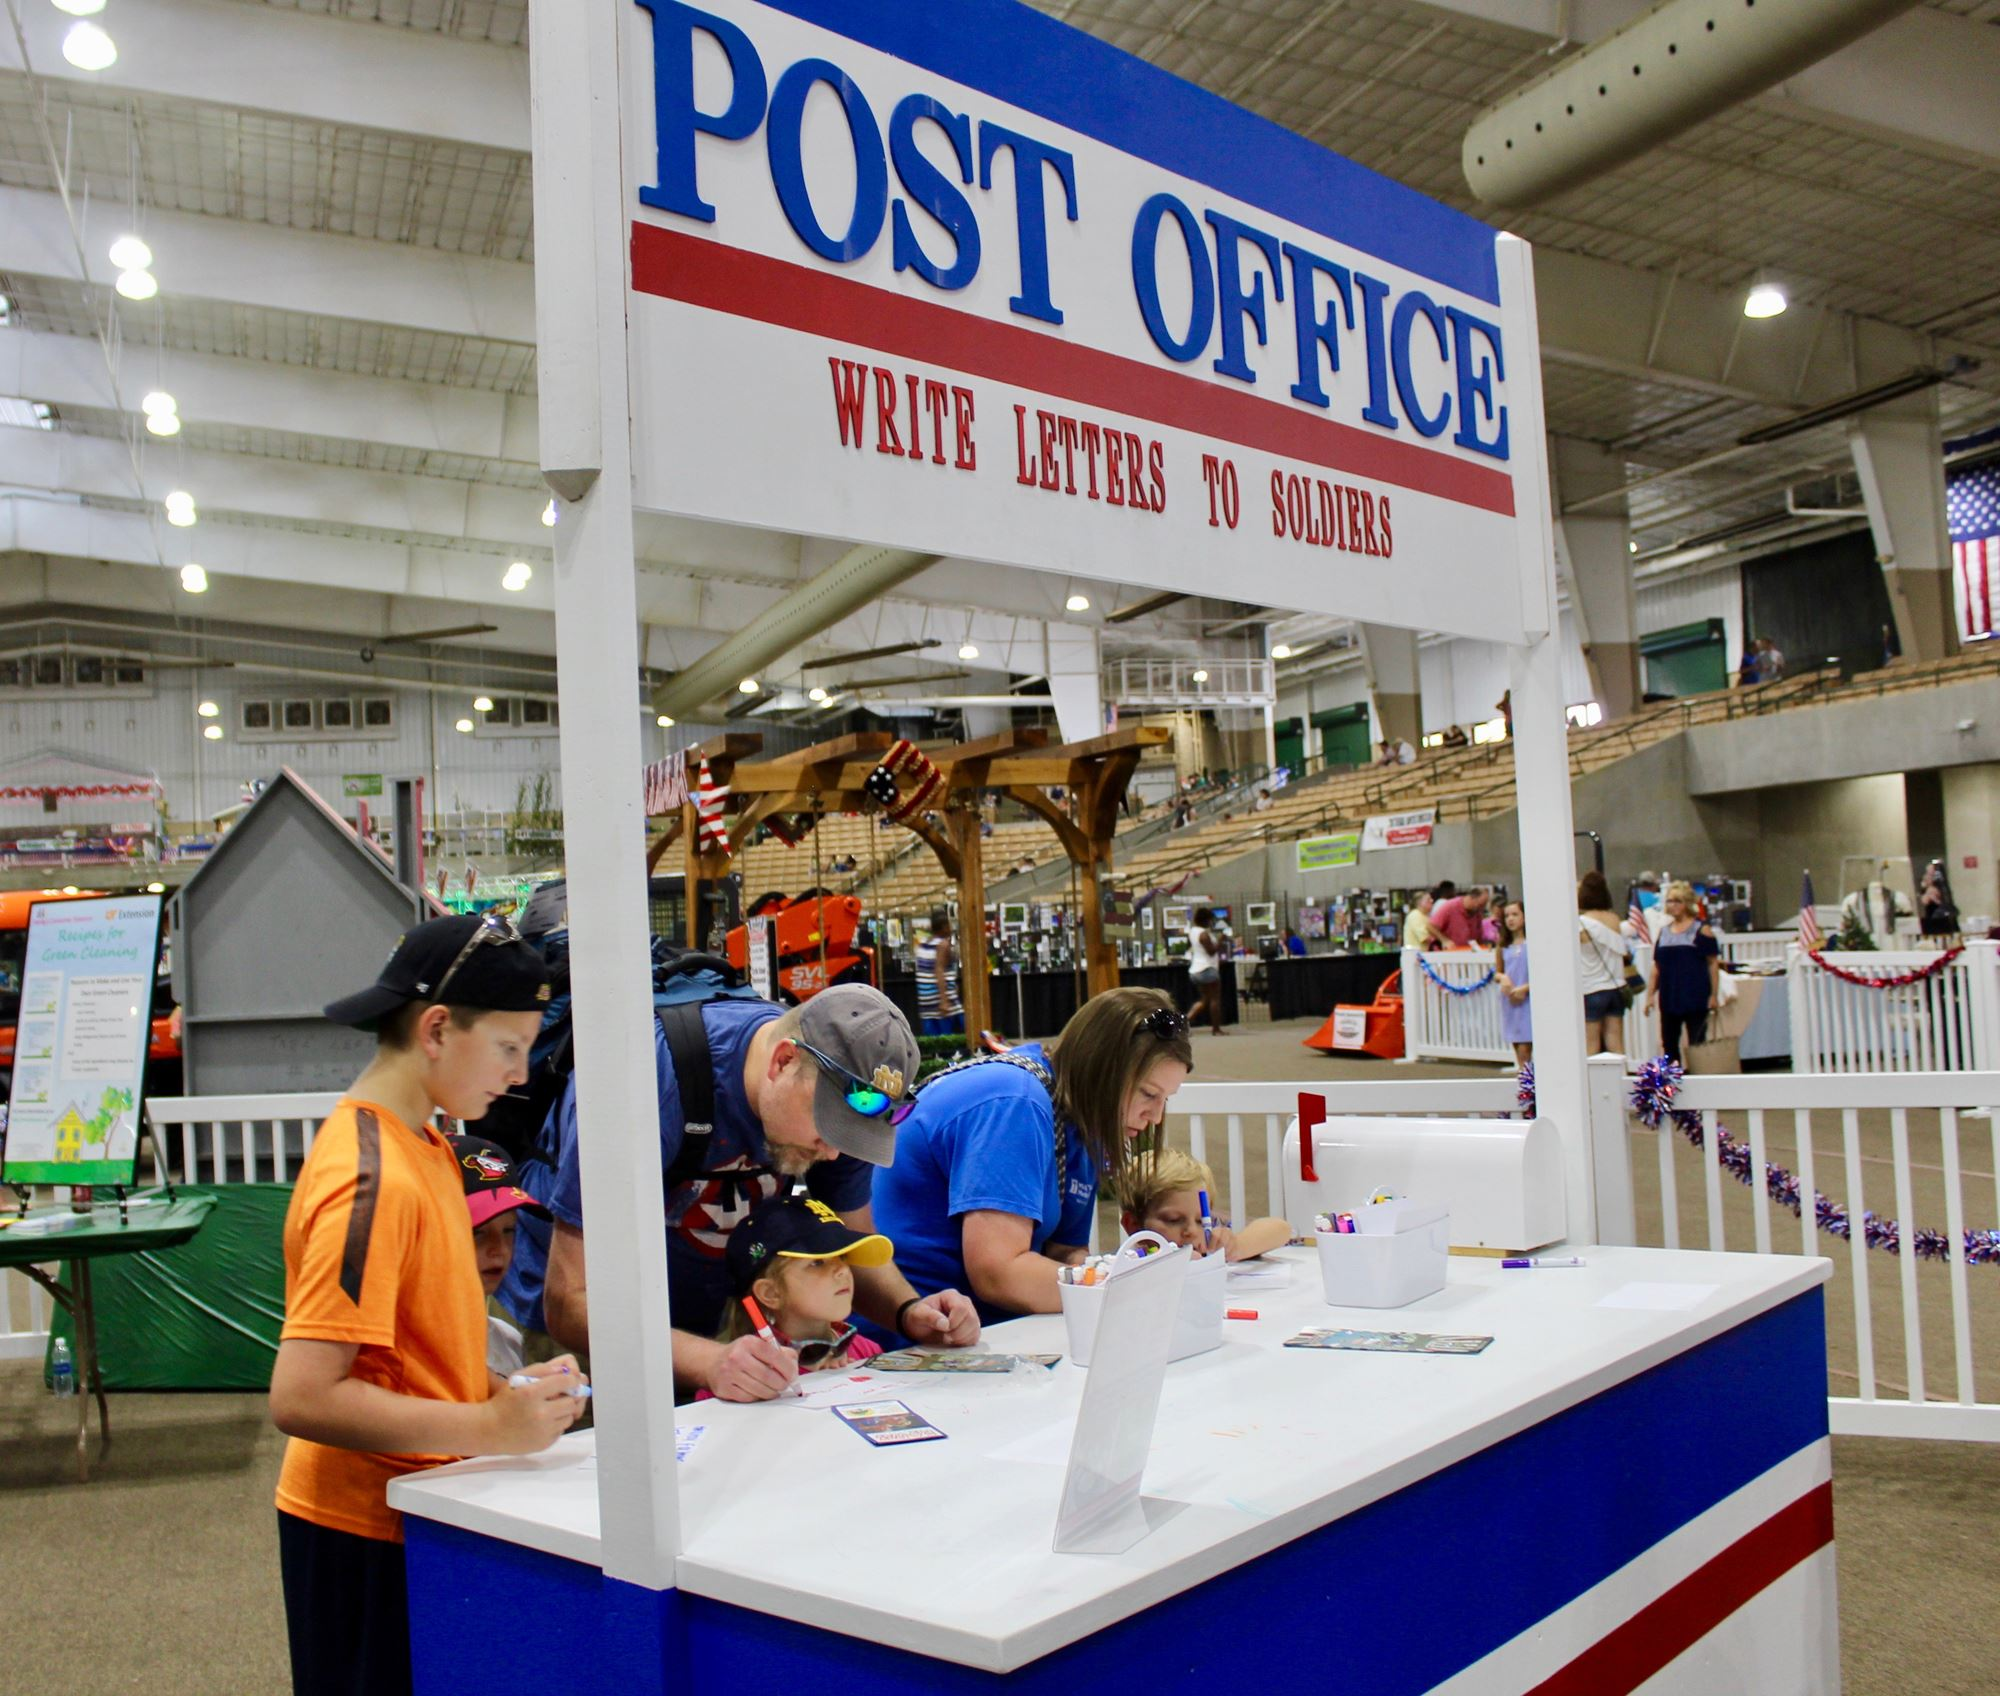 People writing letters to soldiers at the village post office